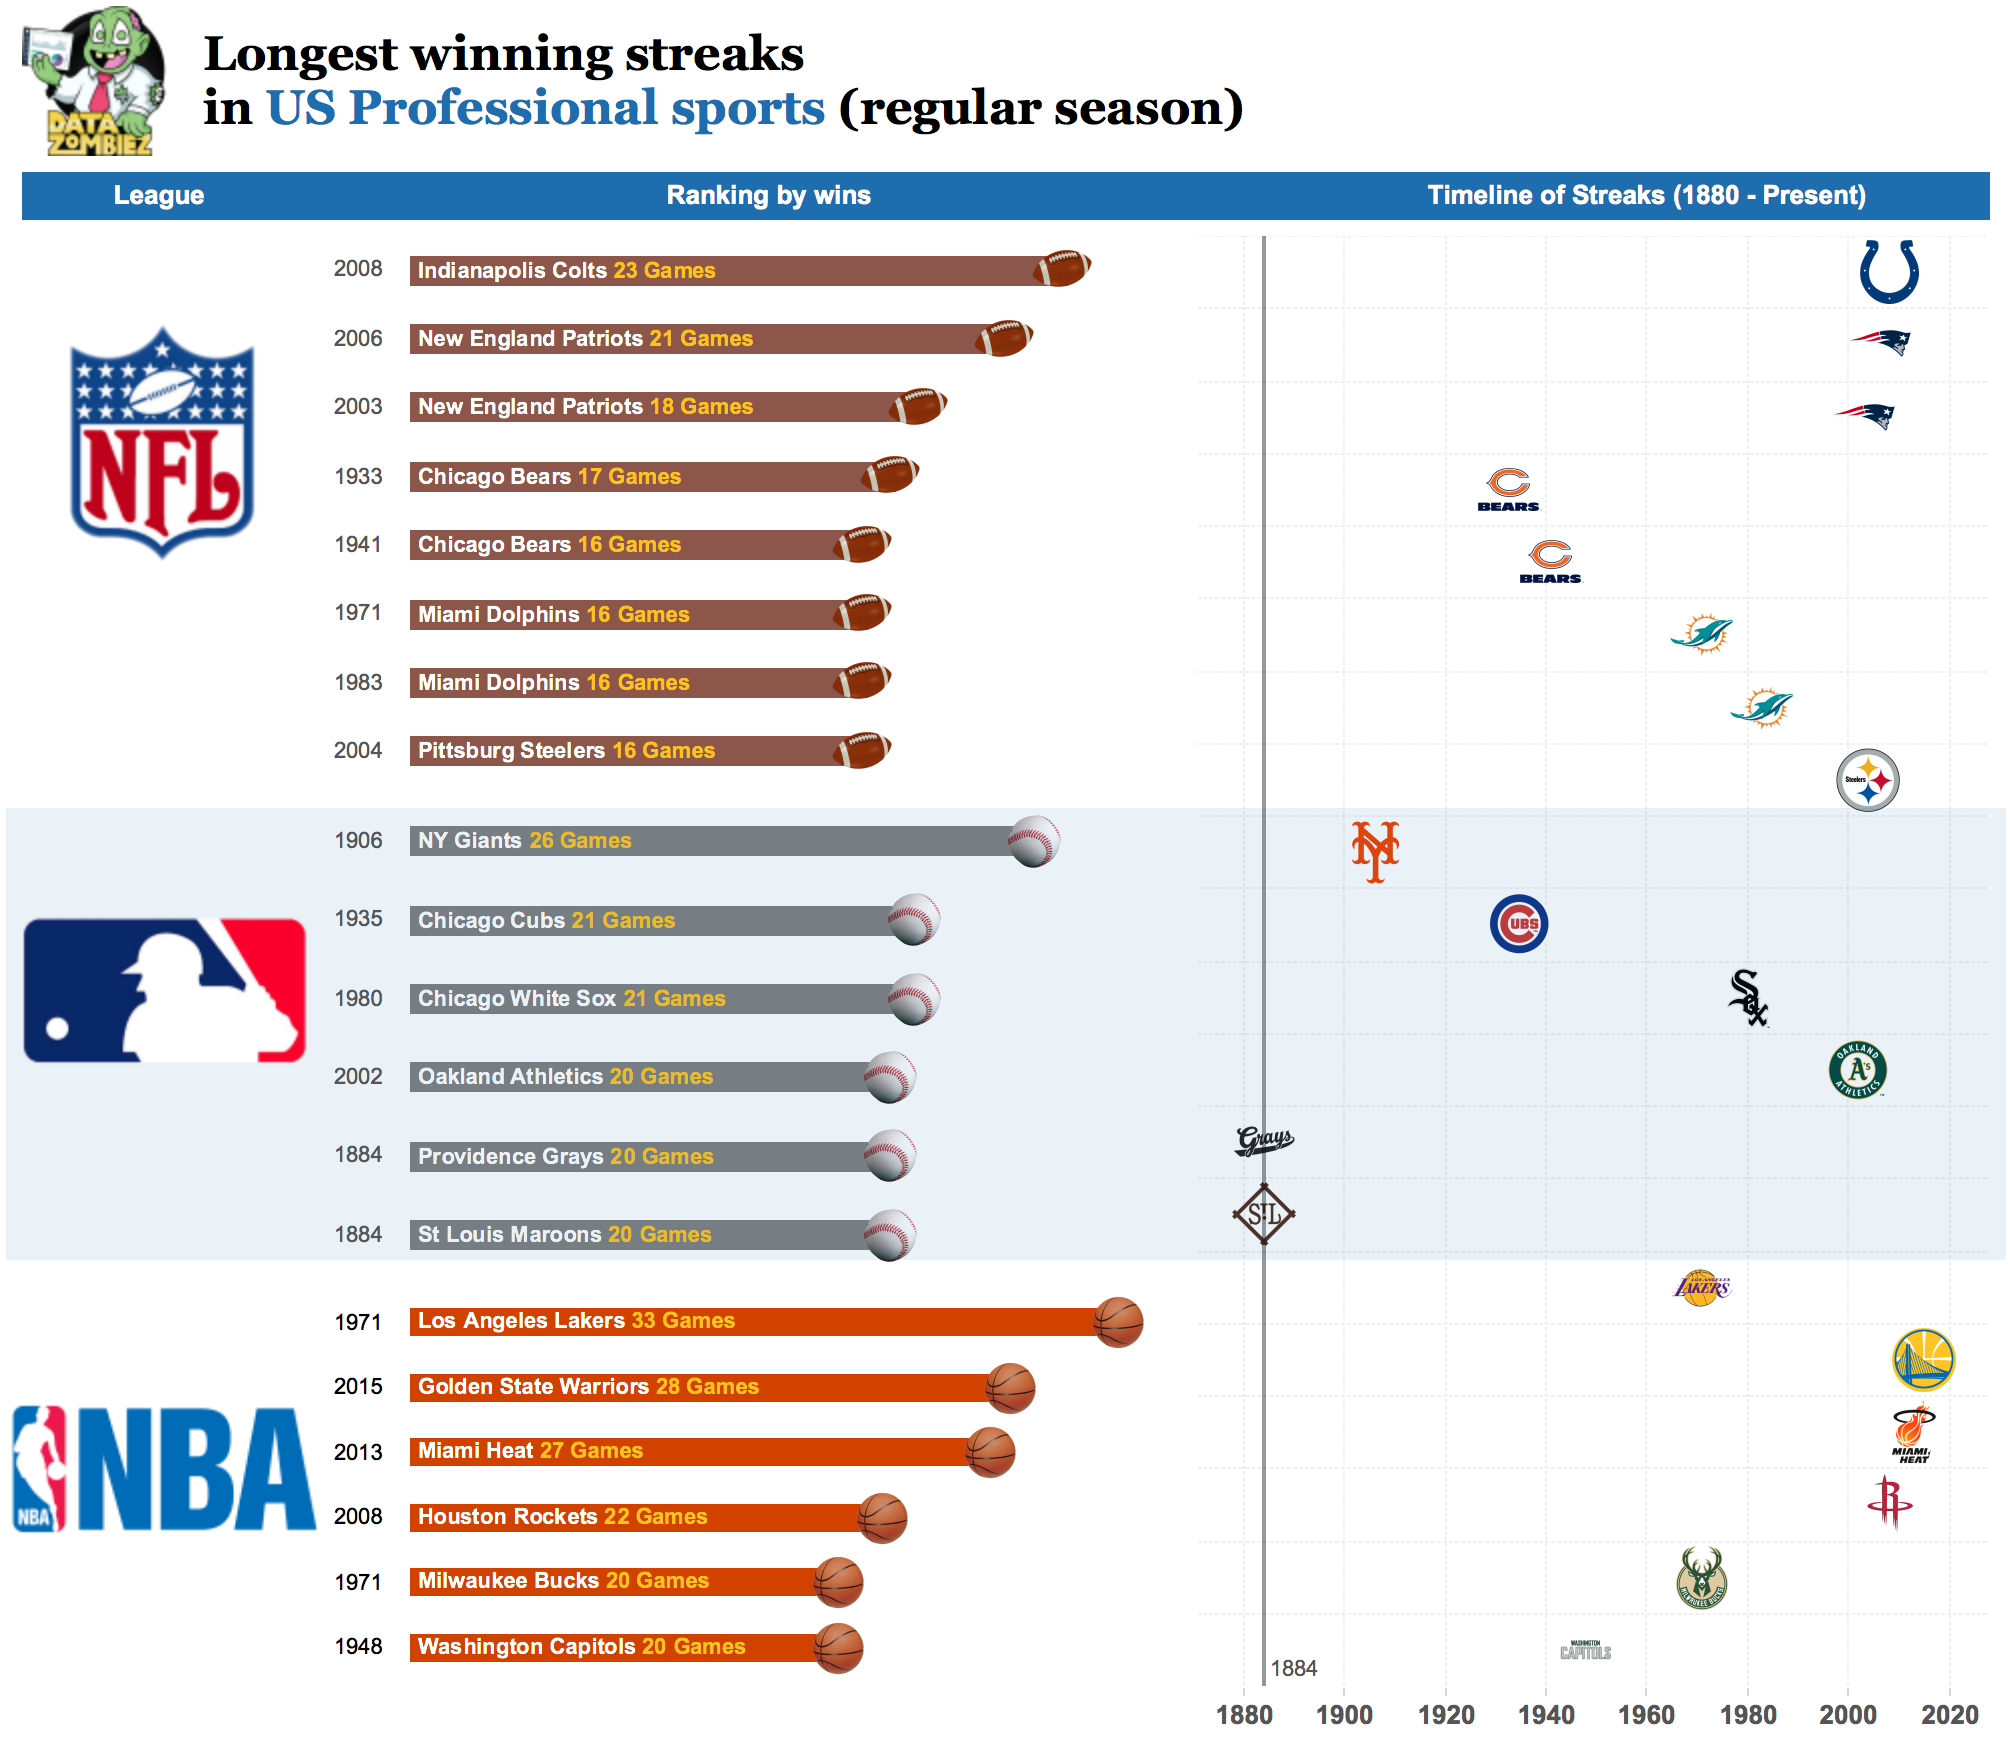 Longest winning streaks in US professional sports | Data